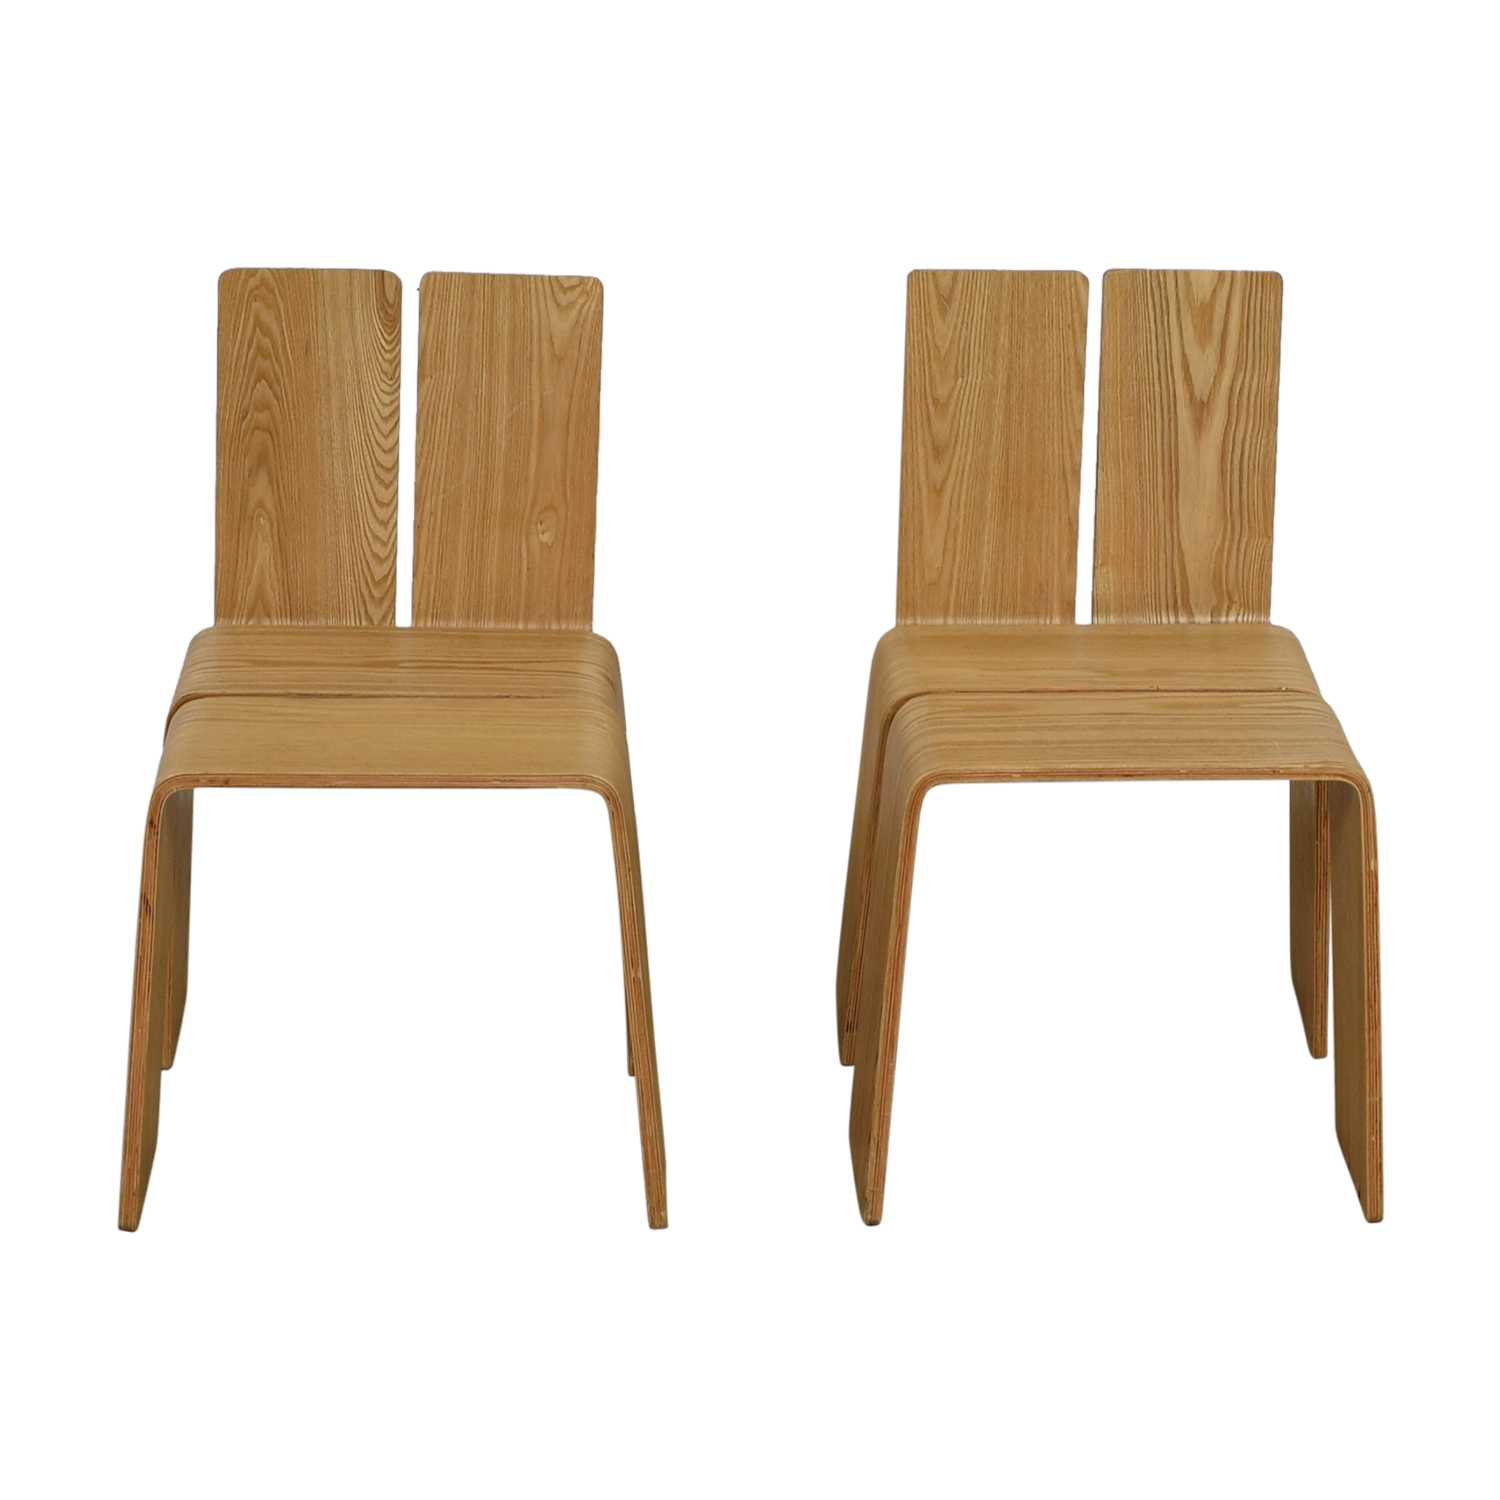 Contempo Natural Beech Wood Chairs for sale